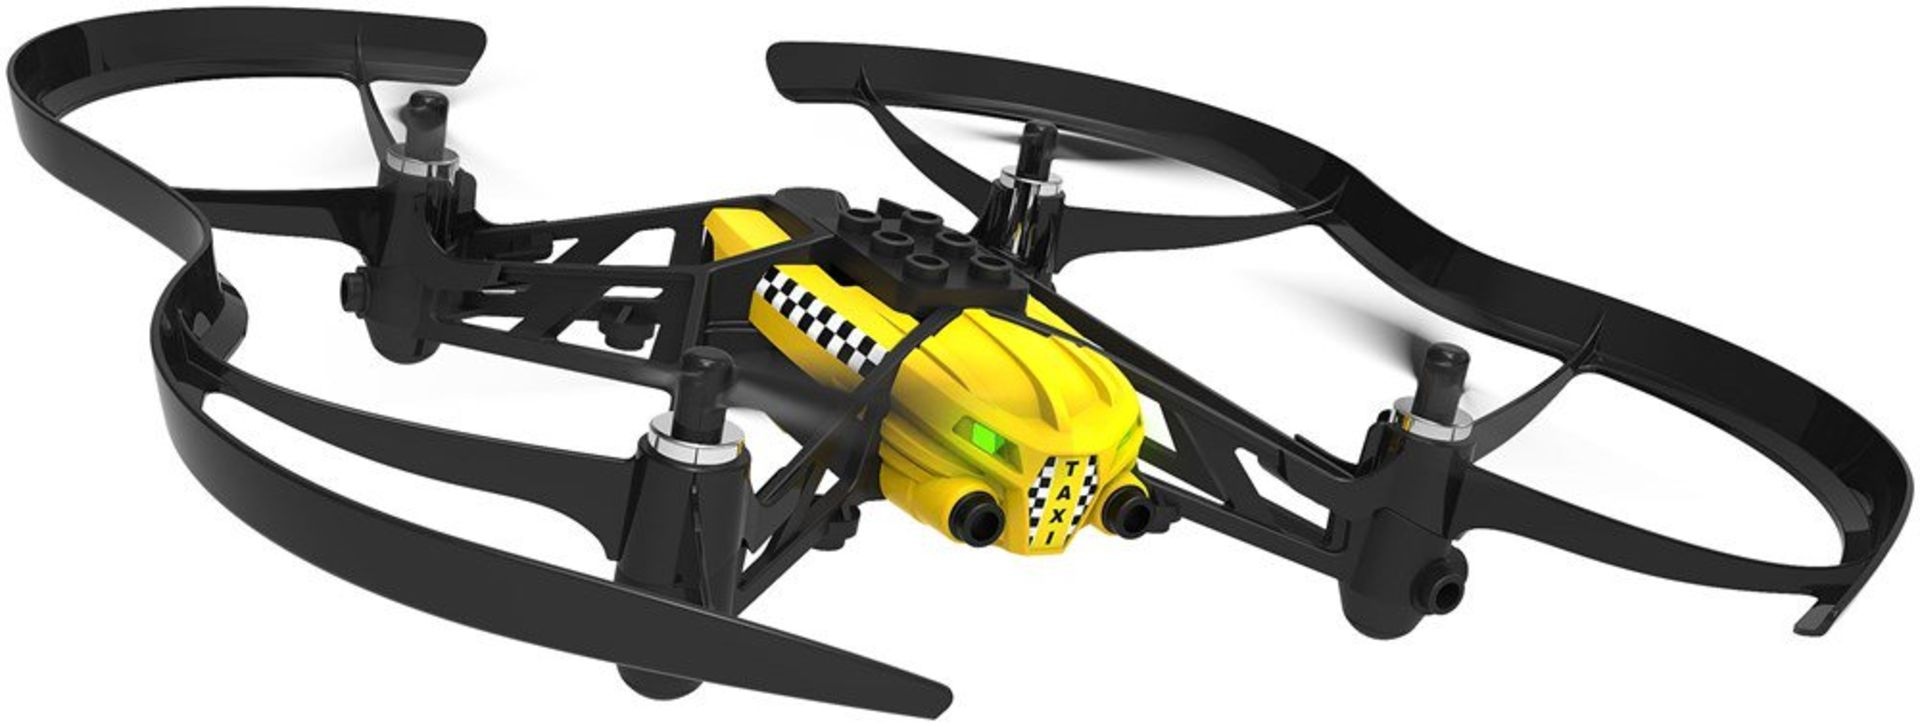 Lot 12038 - V Brand New Parrot Minidrone Travis Airborn Smartphone Controlled Cargo Drone - 360 Degree